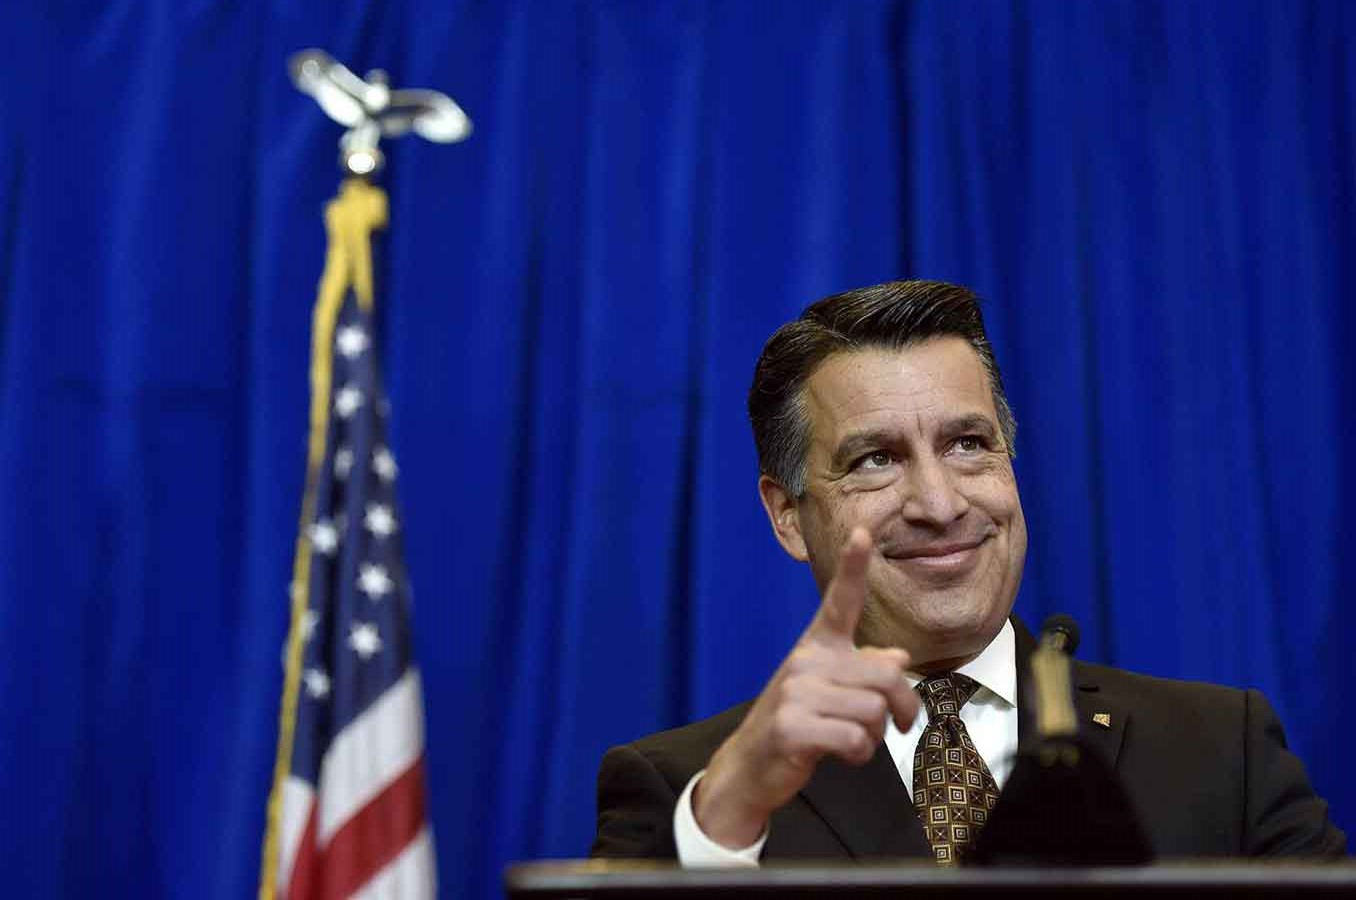 Obama administration is considering appointing Republican governor for Nevada and former federal judge, Brian Sandoval, as the candidate to fulfill the empty sit on the Supreme Court. Photo credit: David Becker / AP / NBC